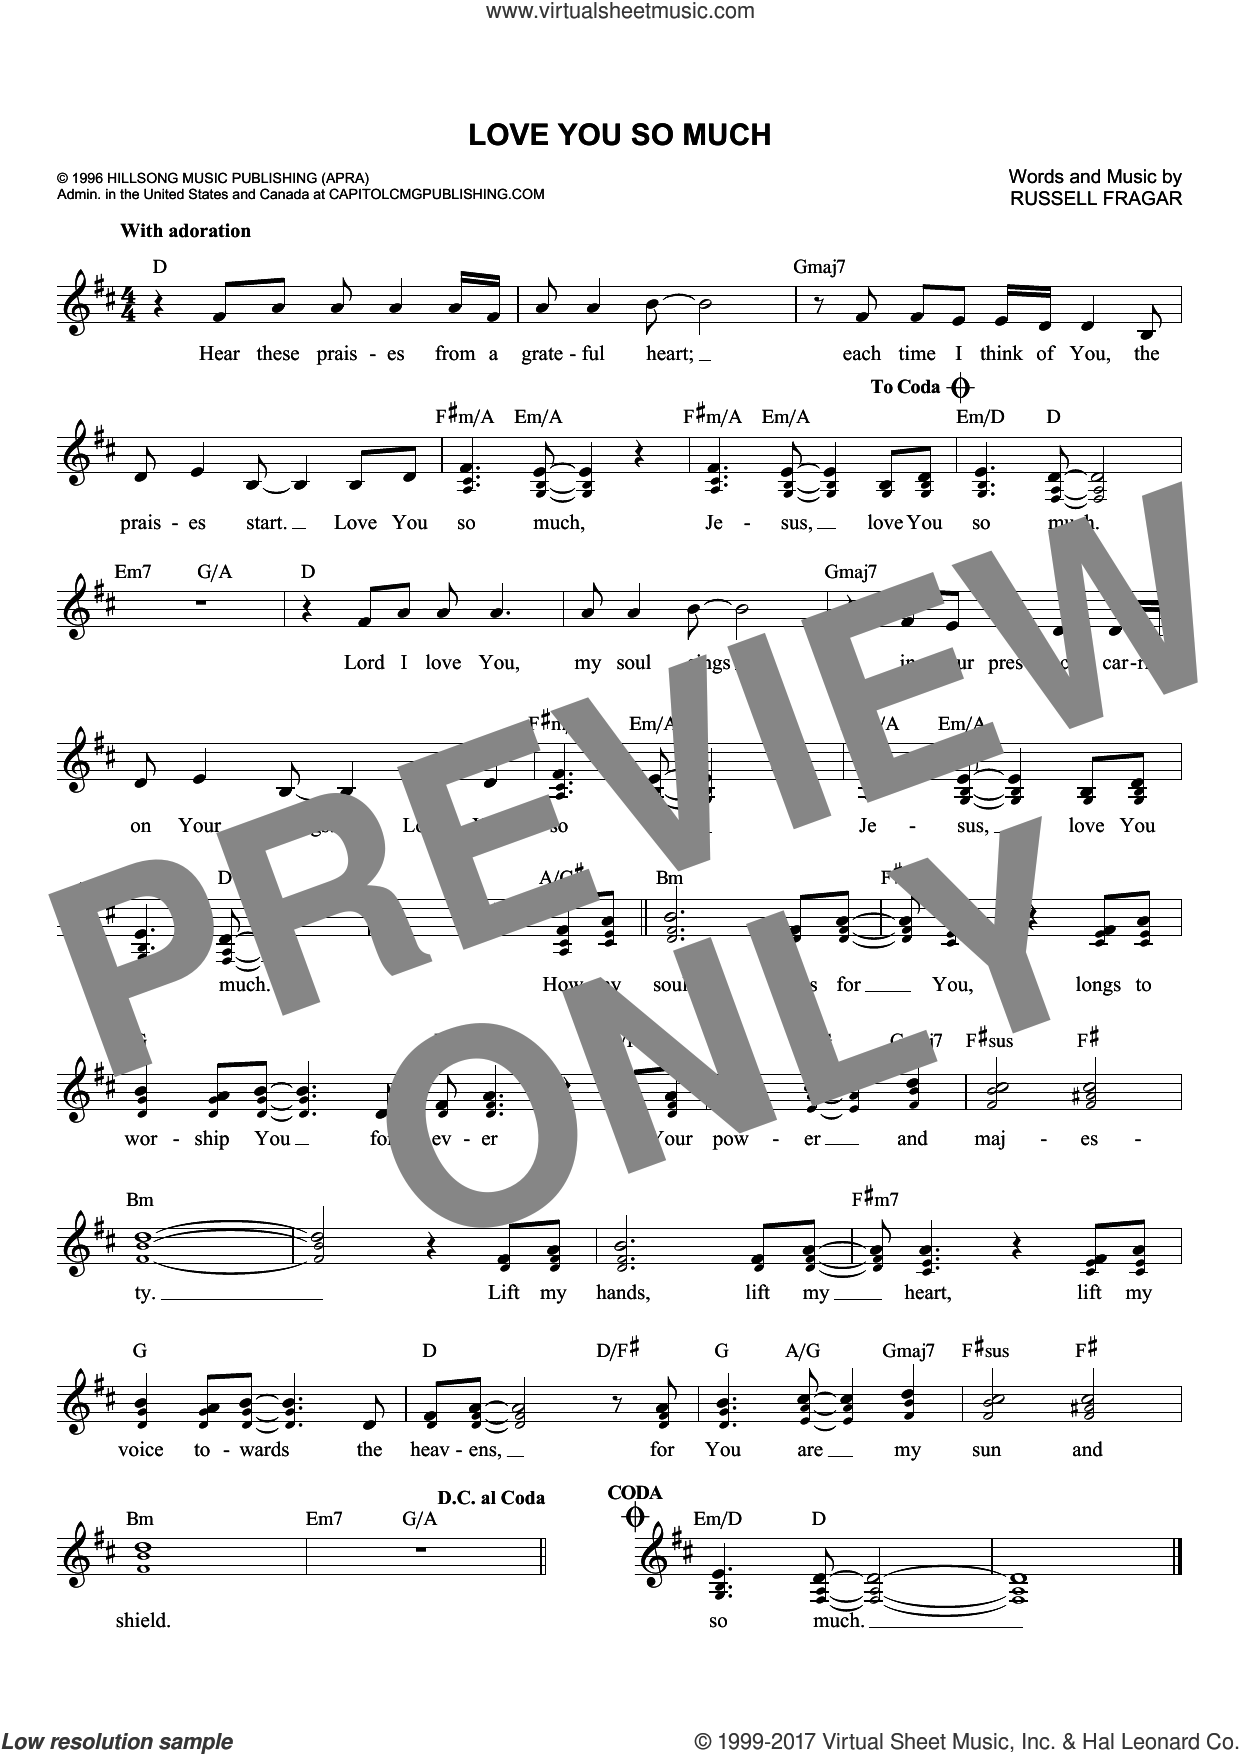 Love You So Much sheet music for voice and other instruments (fake book) by Russell Fragar, intermediate skill level